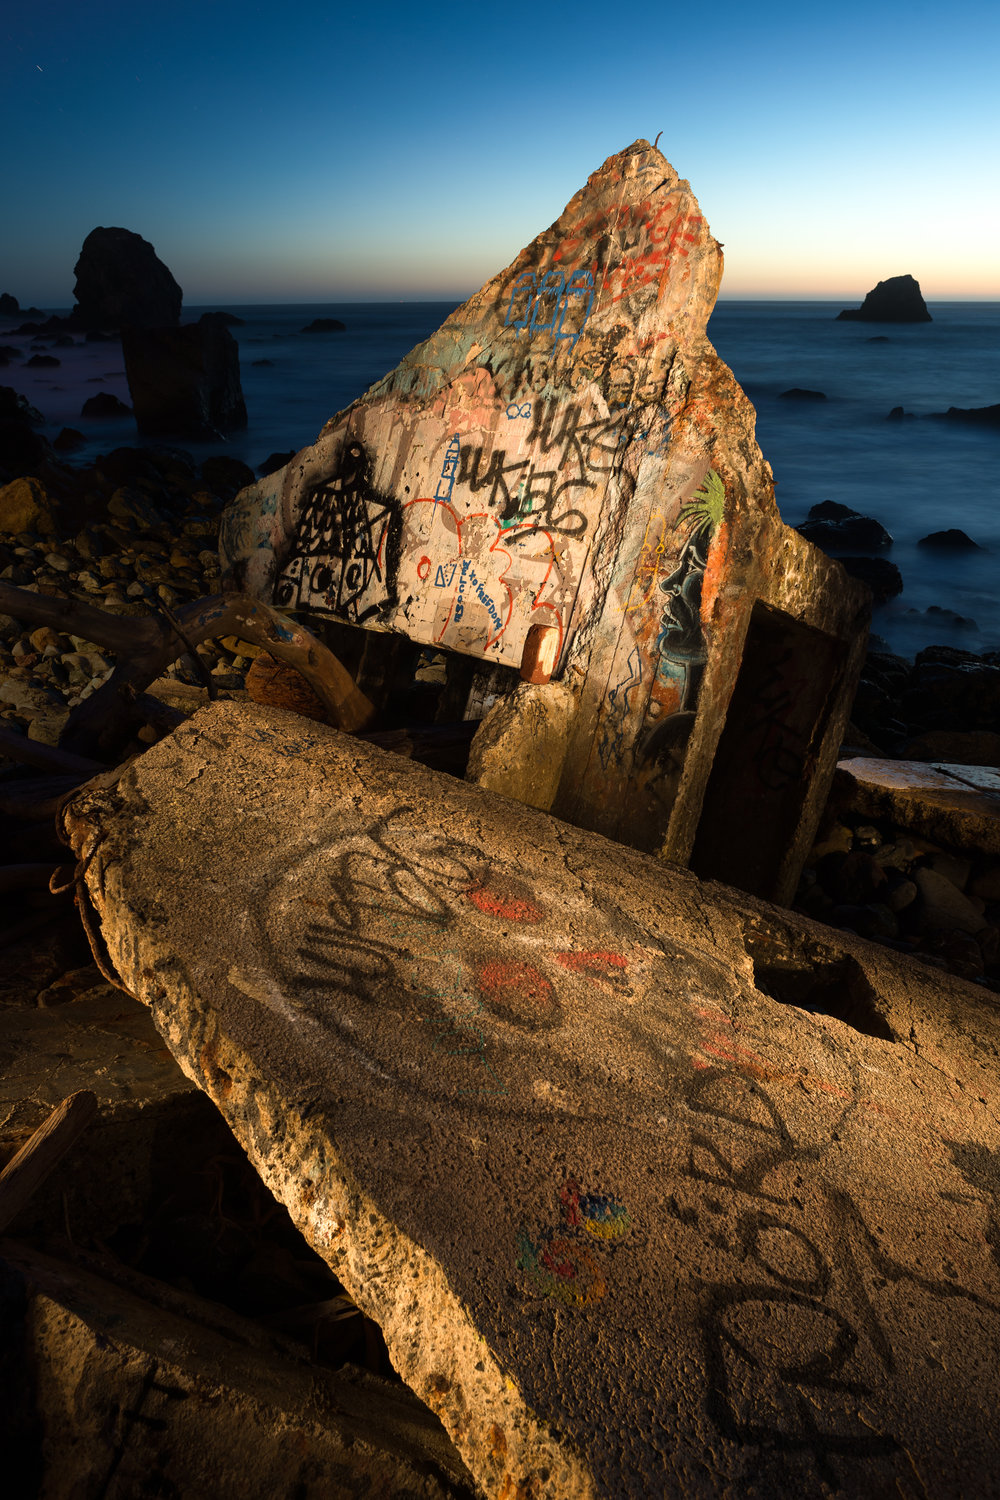 Graffiti & Concrete, Lands End, CA